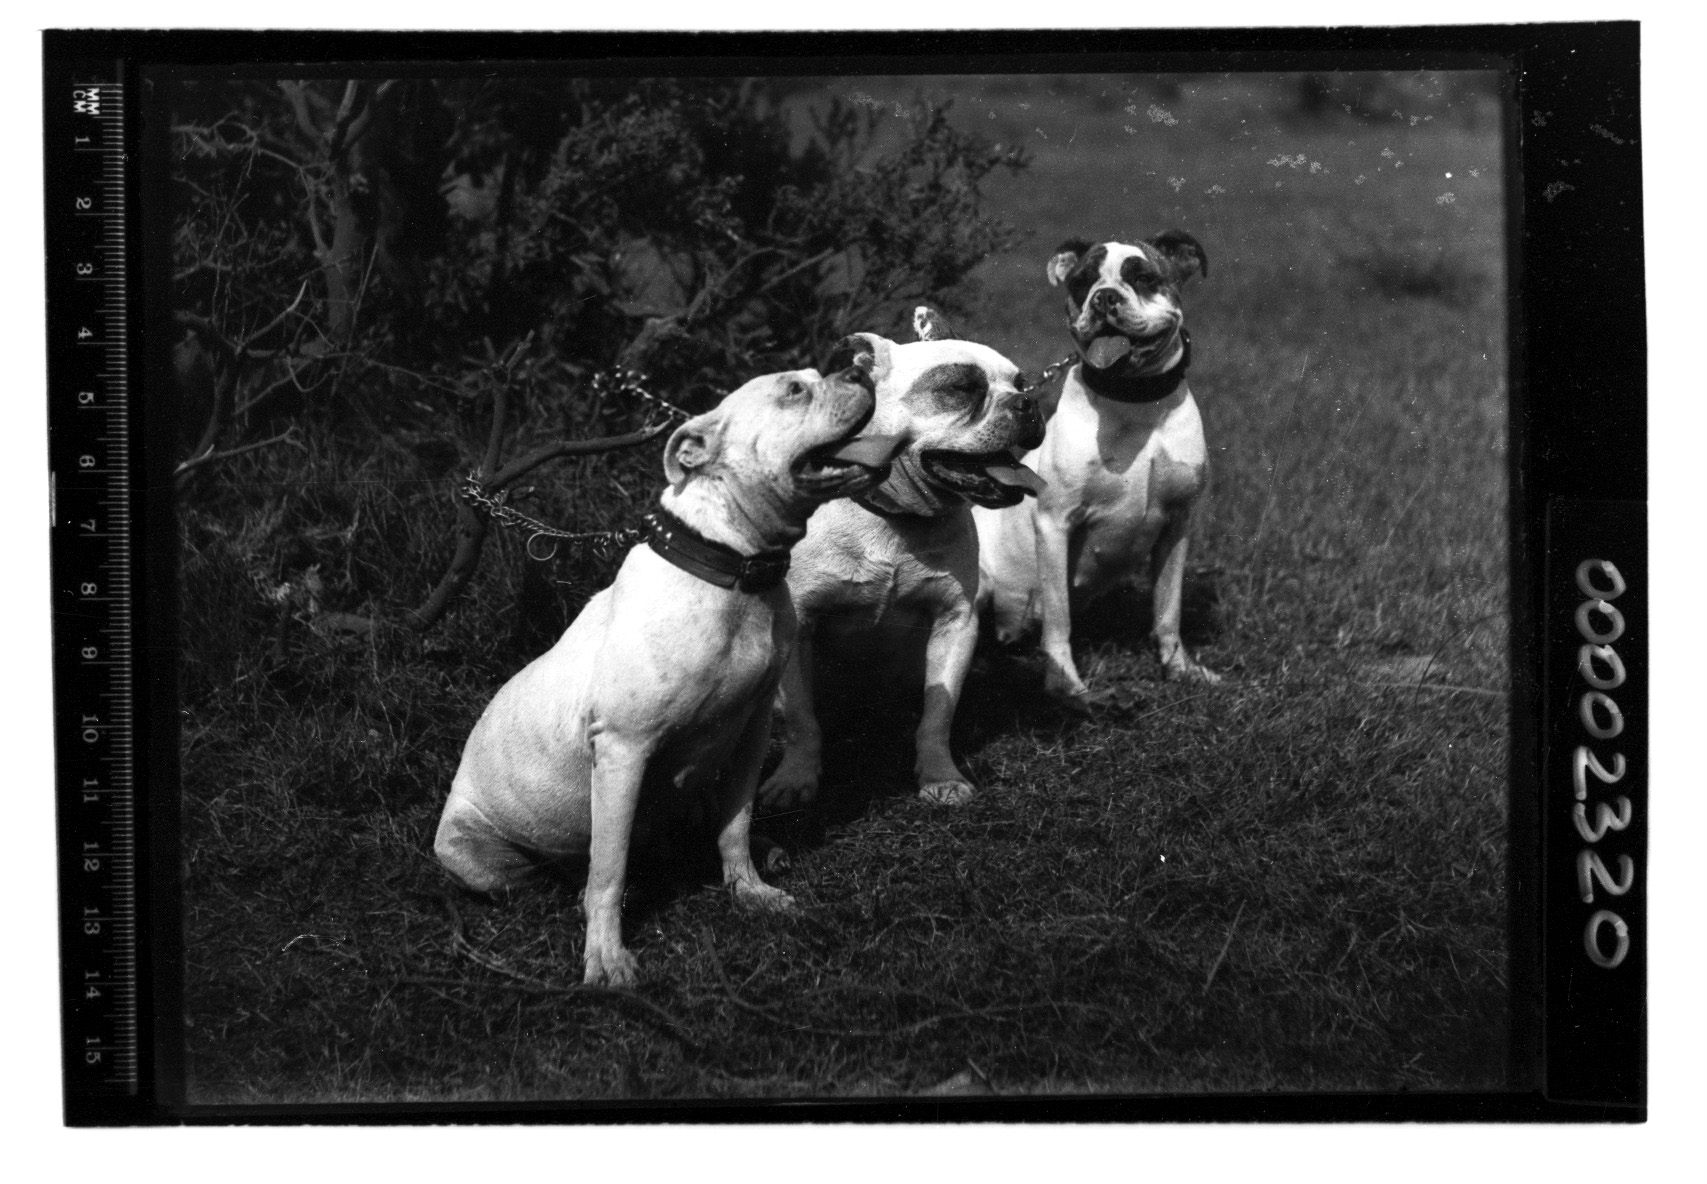 Three dogs leashed together